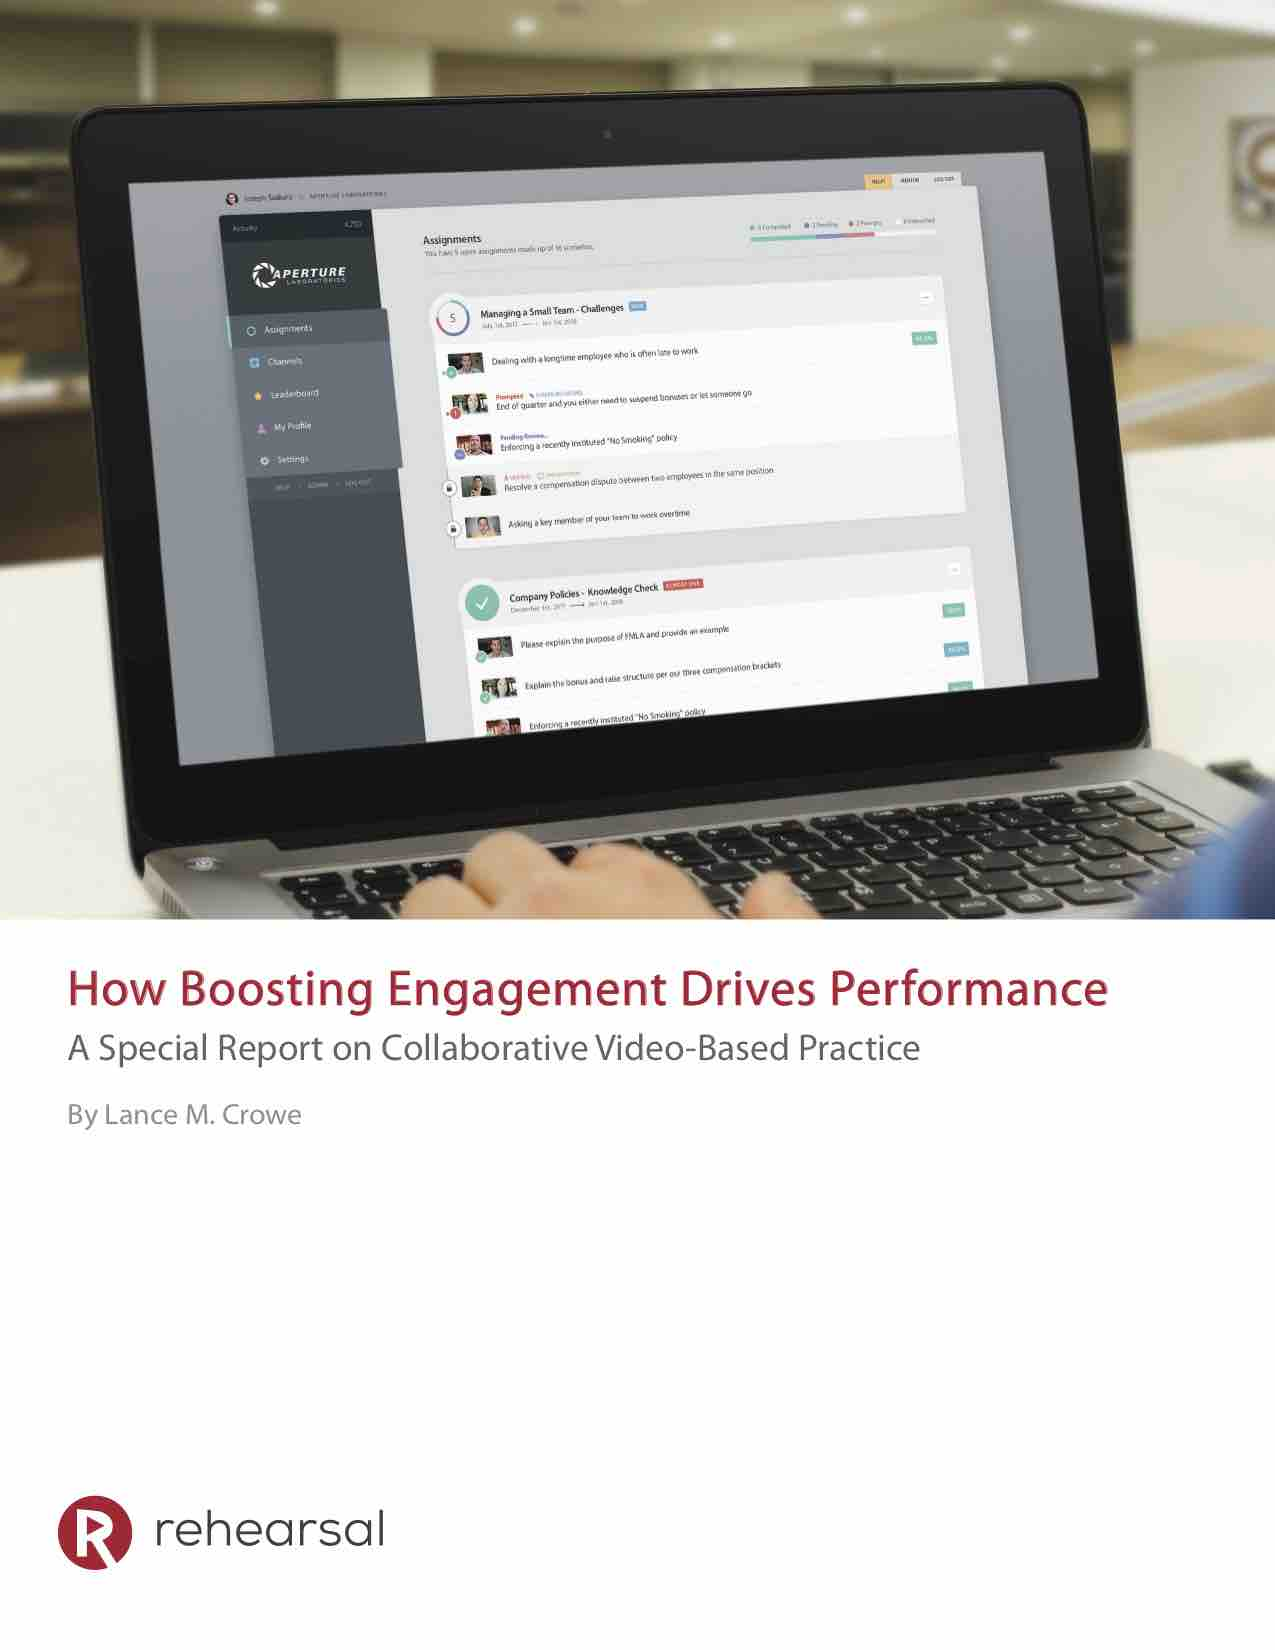 How Boosting Engagement Drives Performance White Paper Cover